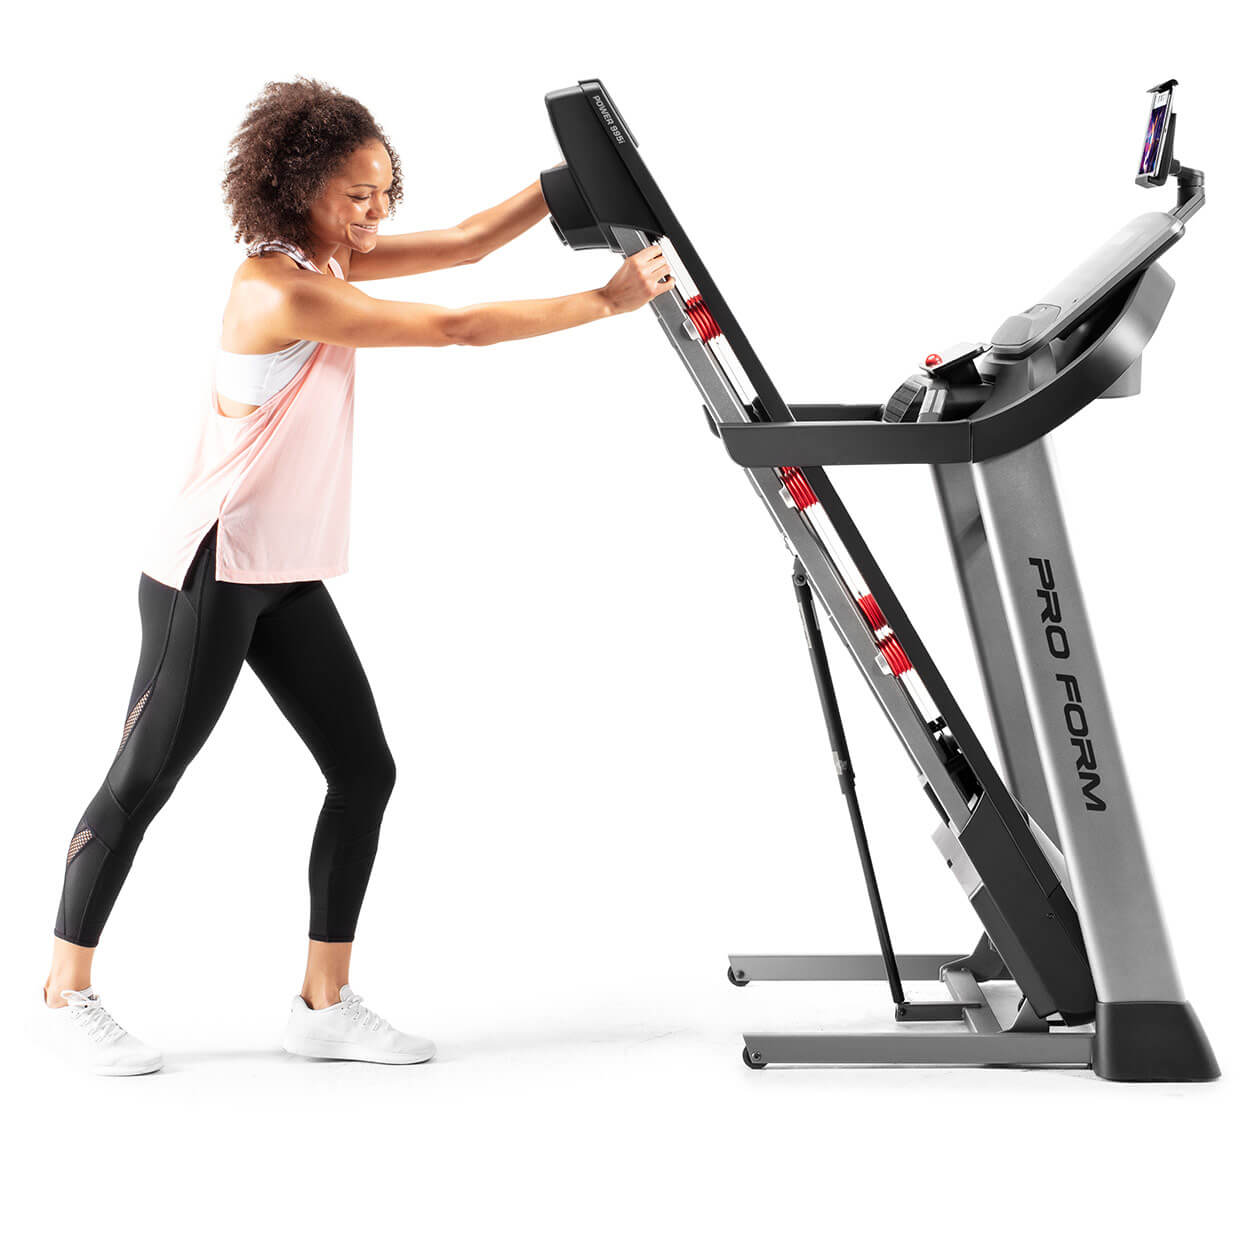 Proform Power Sensitive 7 0 Exercise Bike: ProForm SMART Power 995i Treadmill